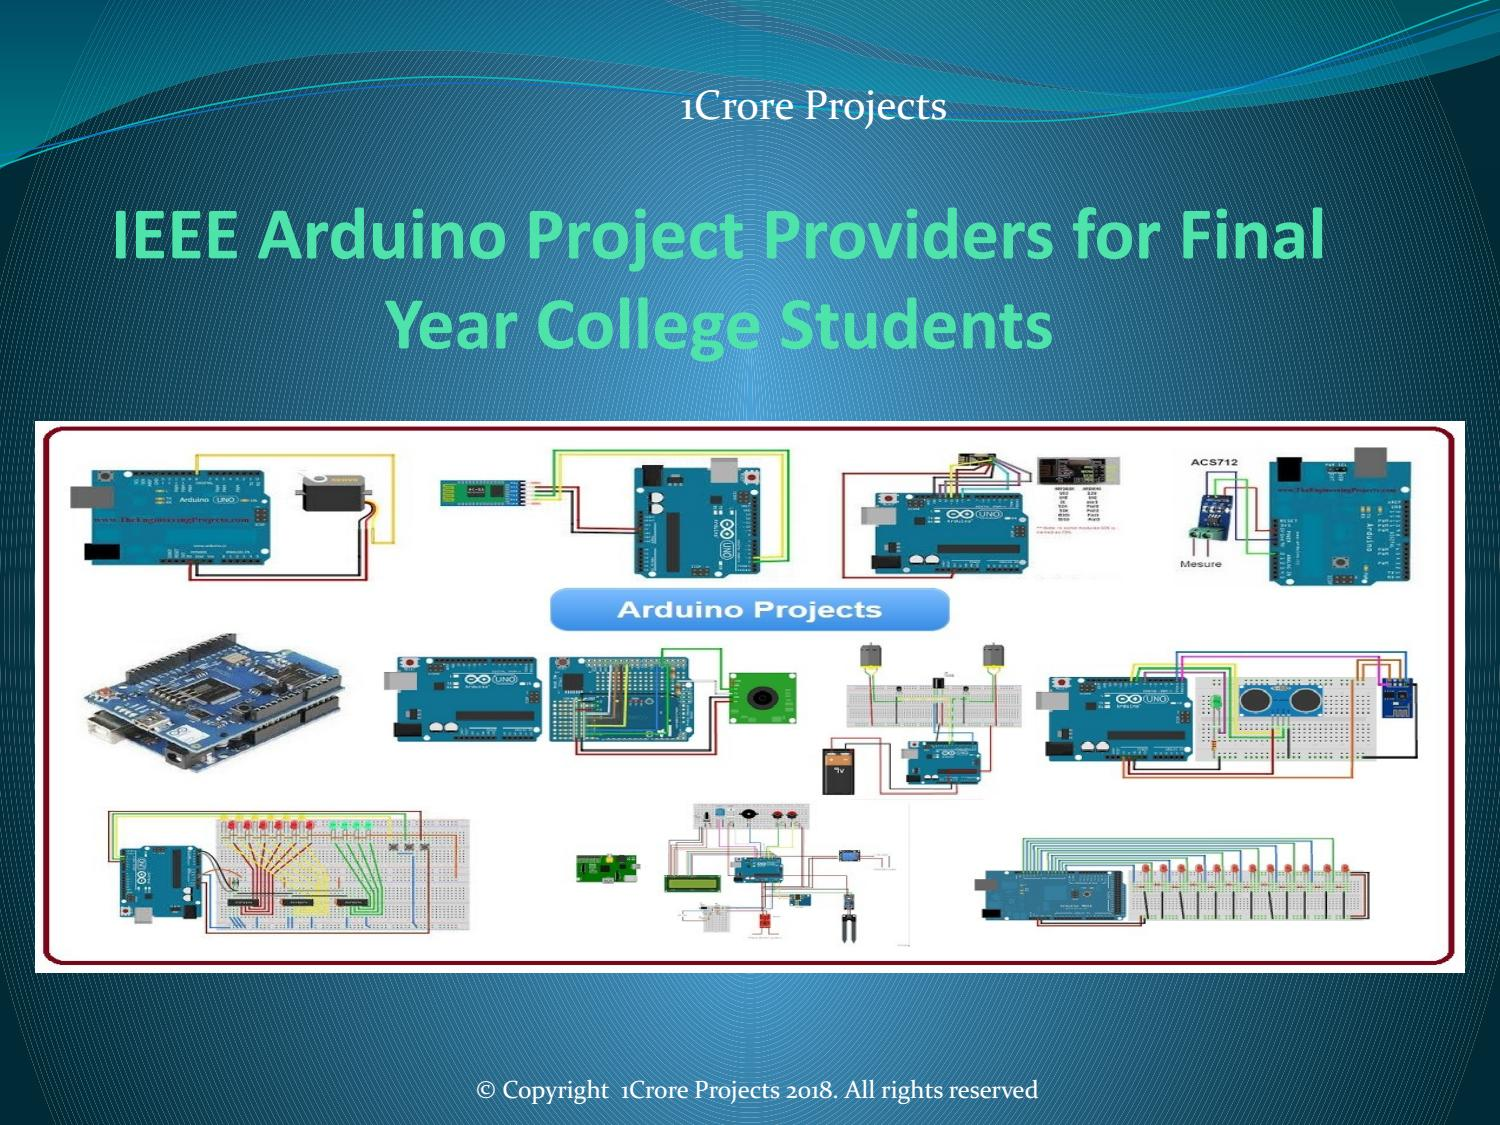 IEEE Arduino Project Providers for Final Year College Students by